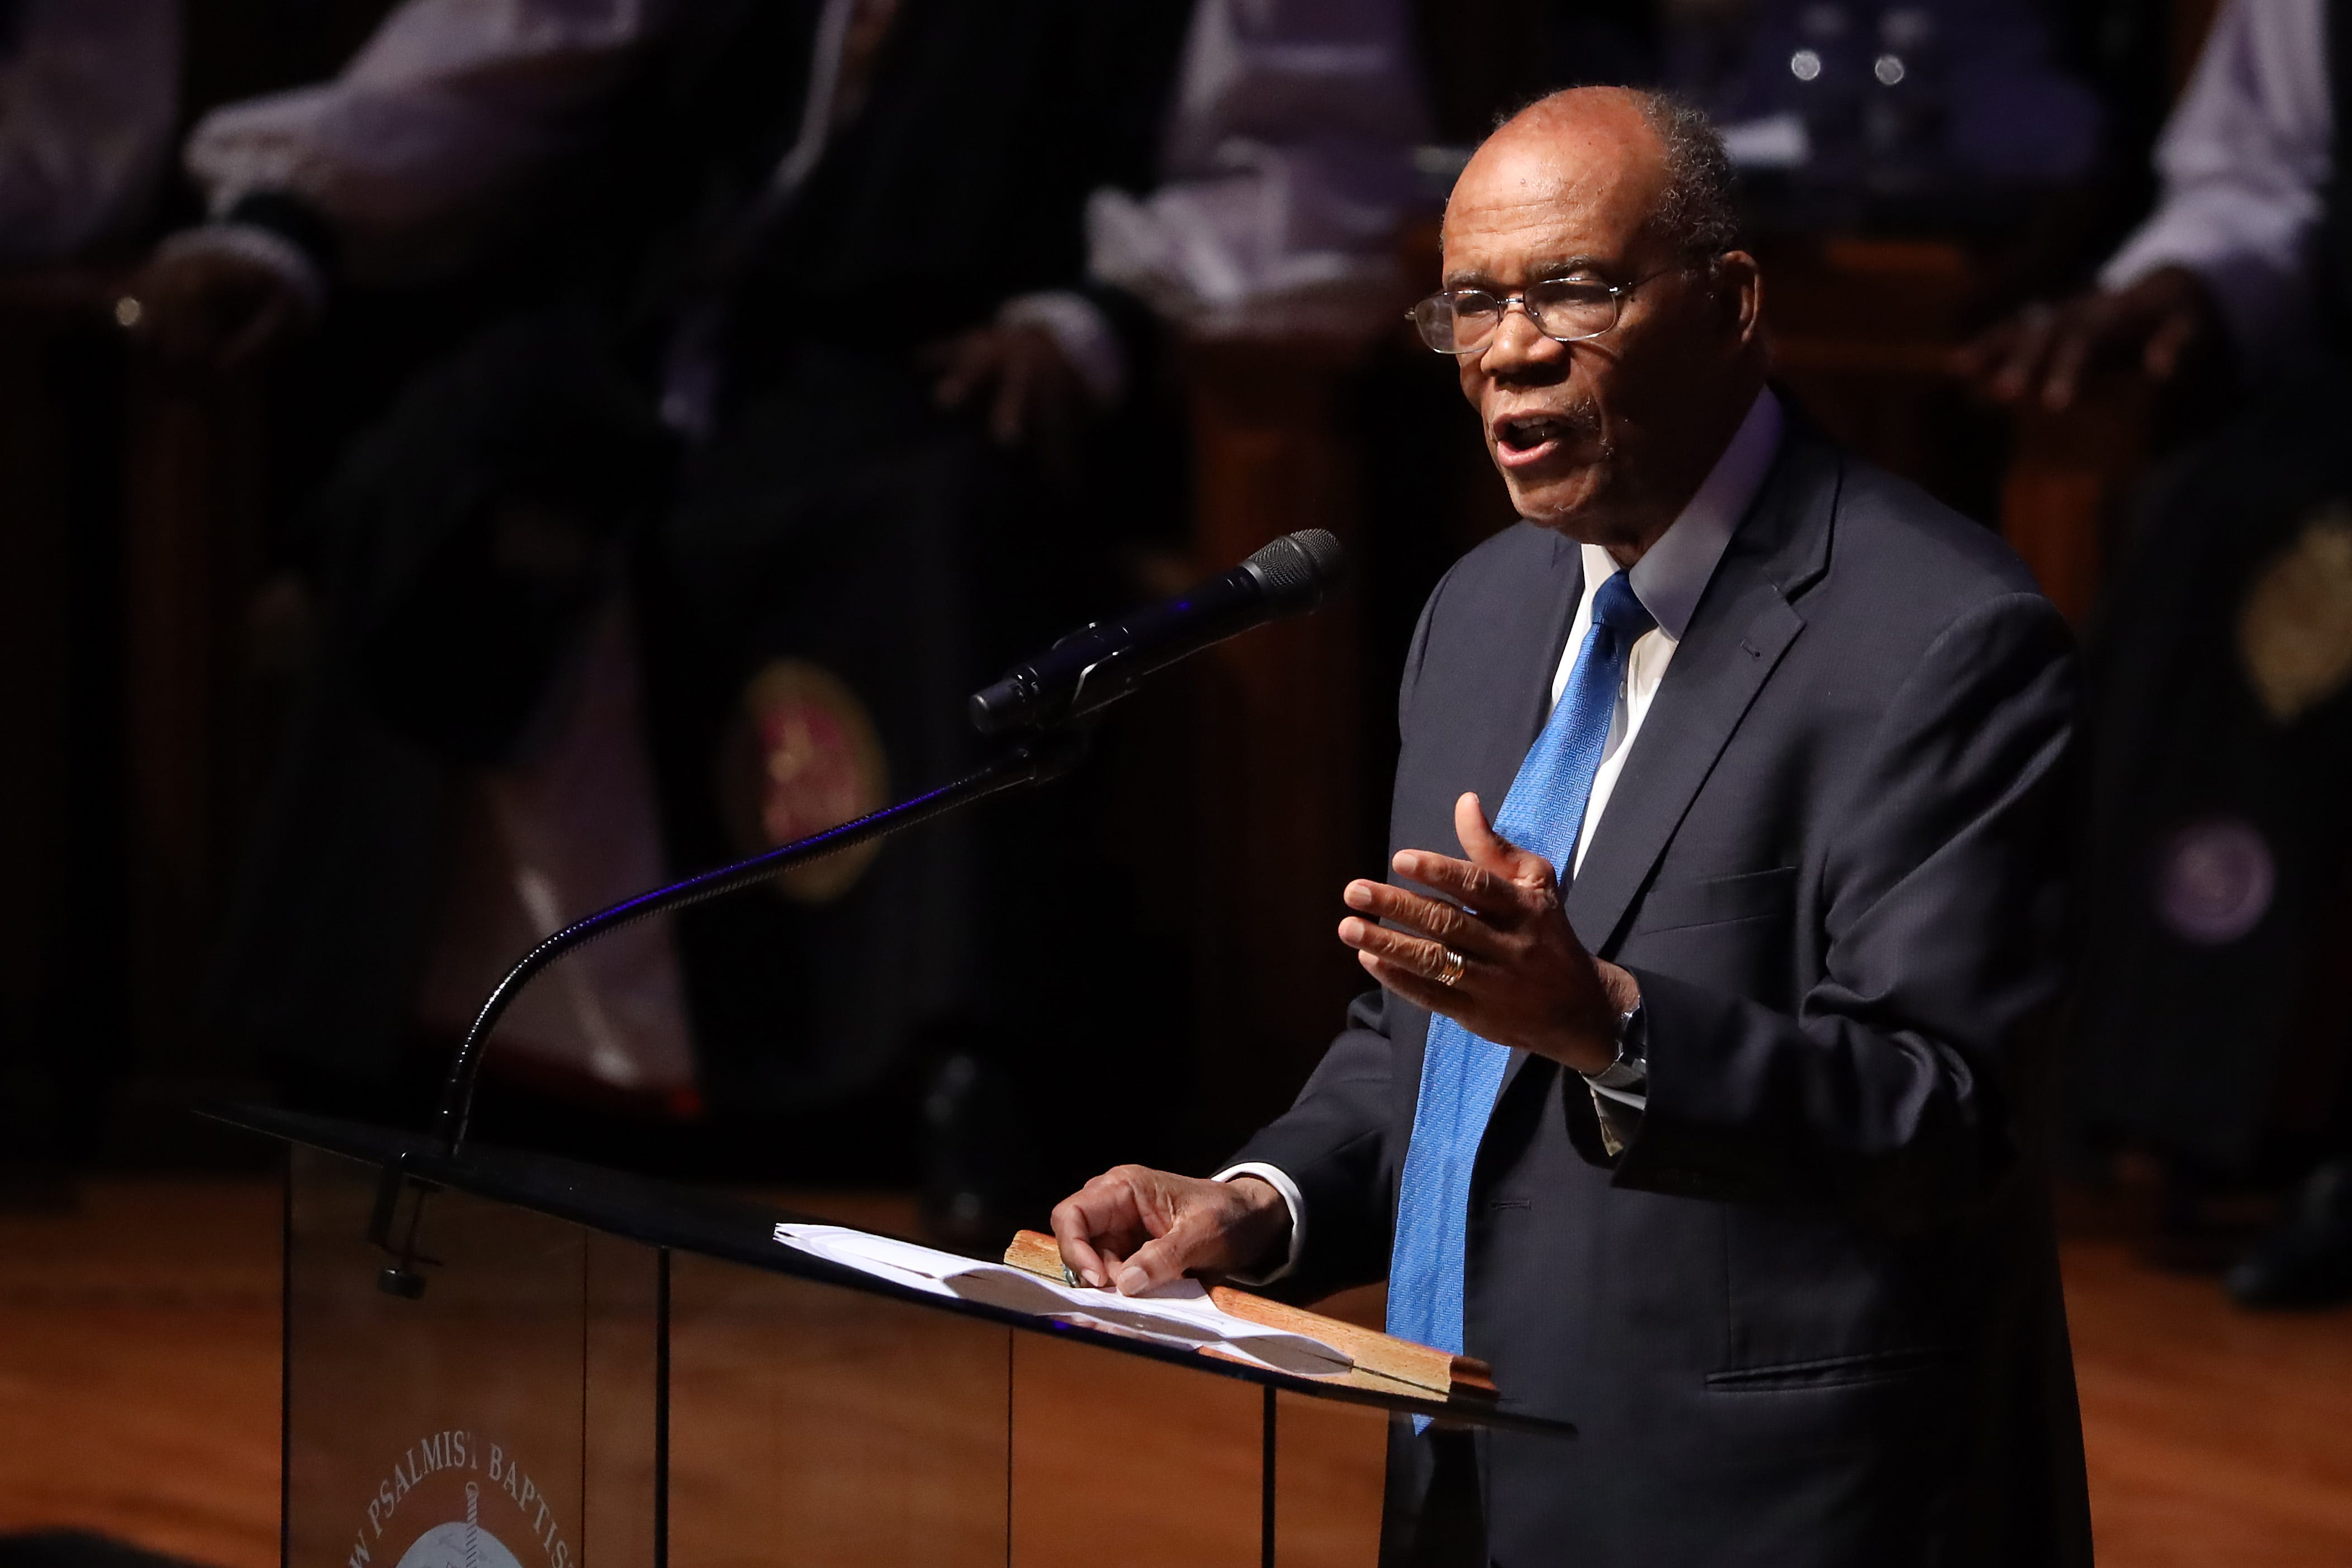 Larry Gibson delivers remarks during the funeral service for Rep. Elijah Cummings (D-MD) at New Psalmist Baptist Church on October 25, 2019 in Baltimore, Maryland. A sharecropperÕs son who rose to become a civil rights champion and the chairman of the powerful House Oversight and Government Reform Committee, Cummings died last week of complications from longstanding health problems.